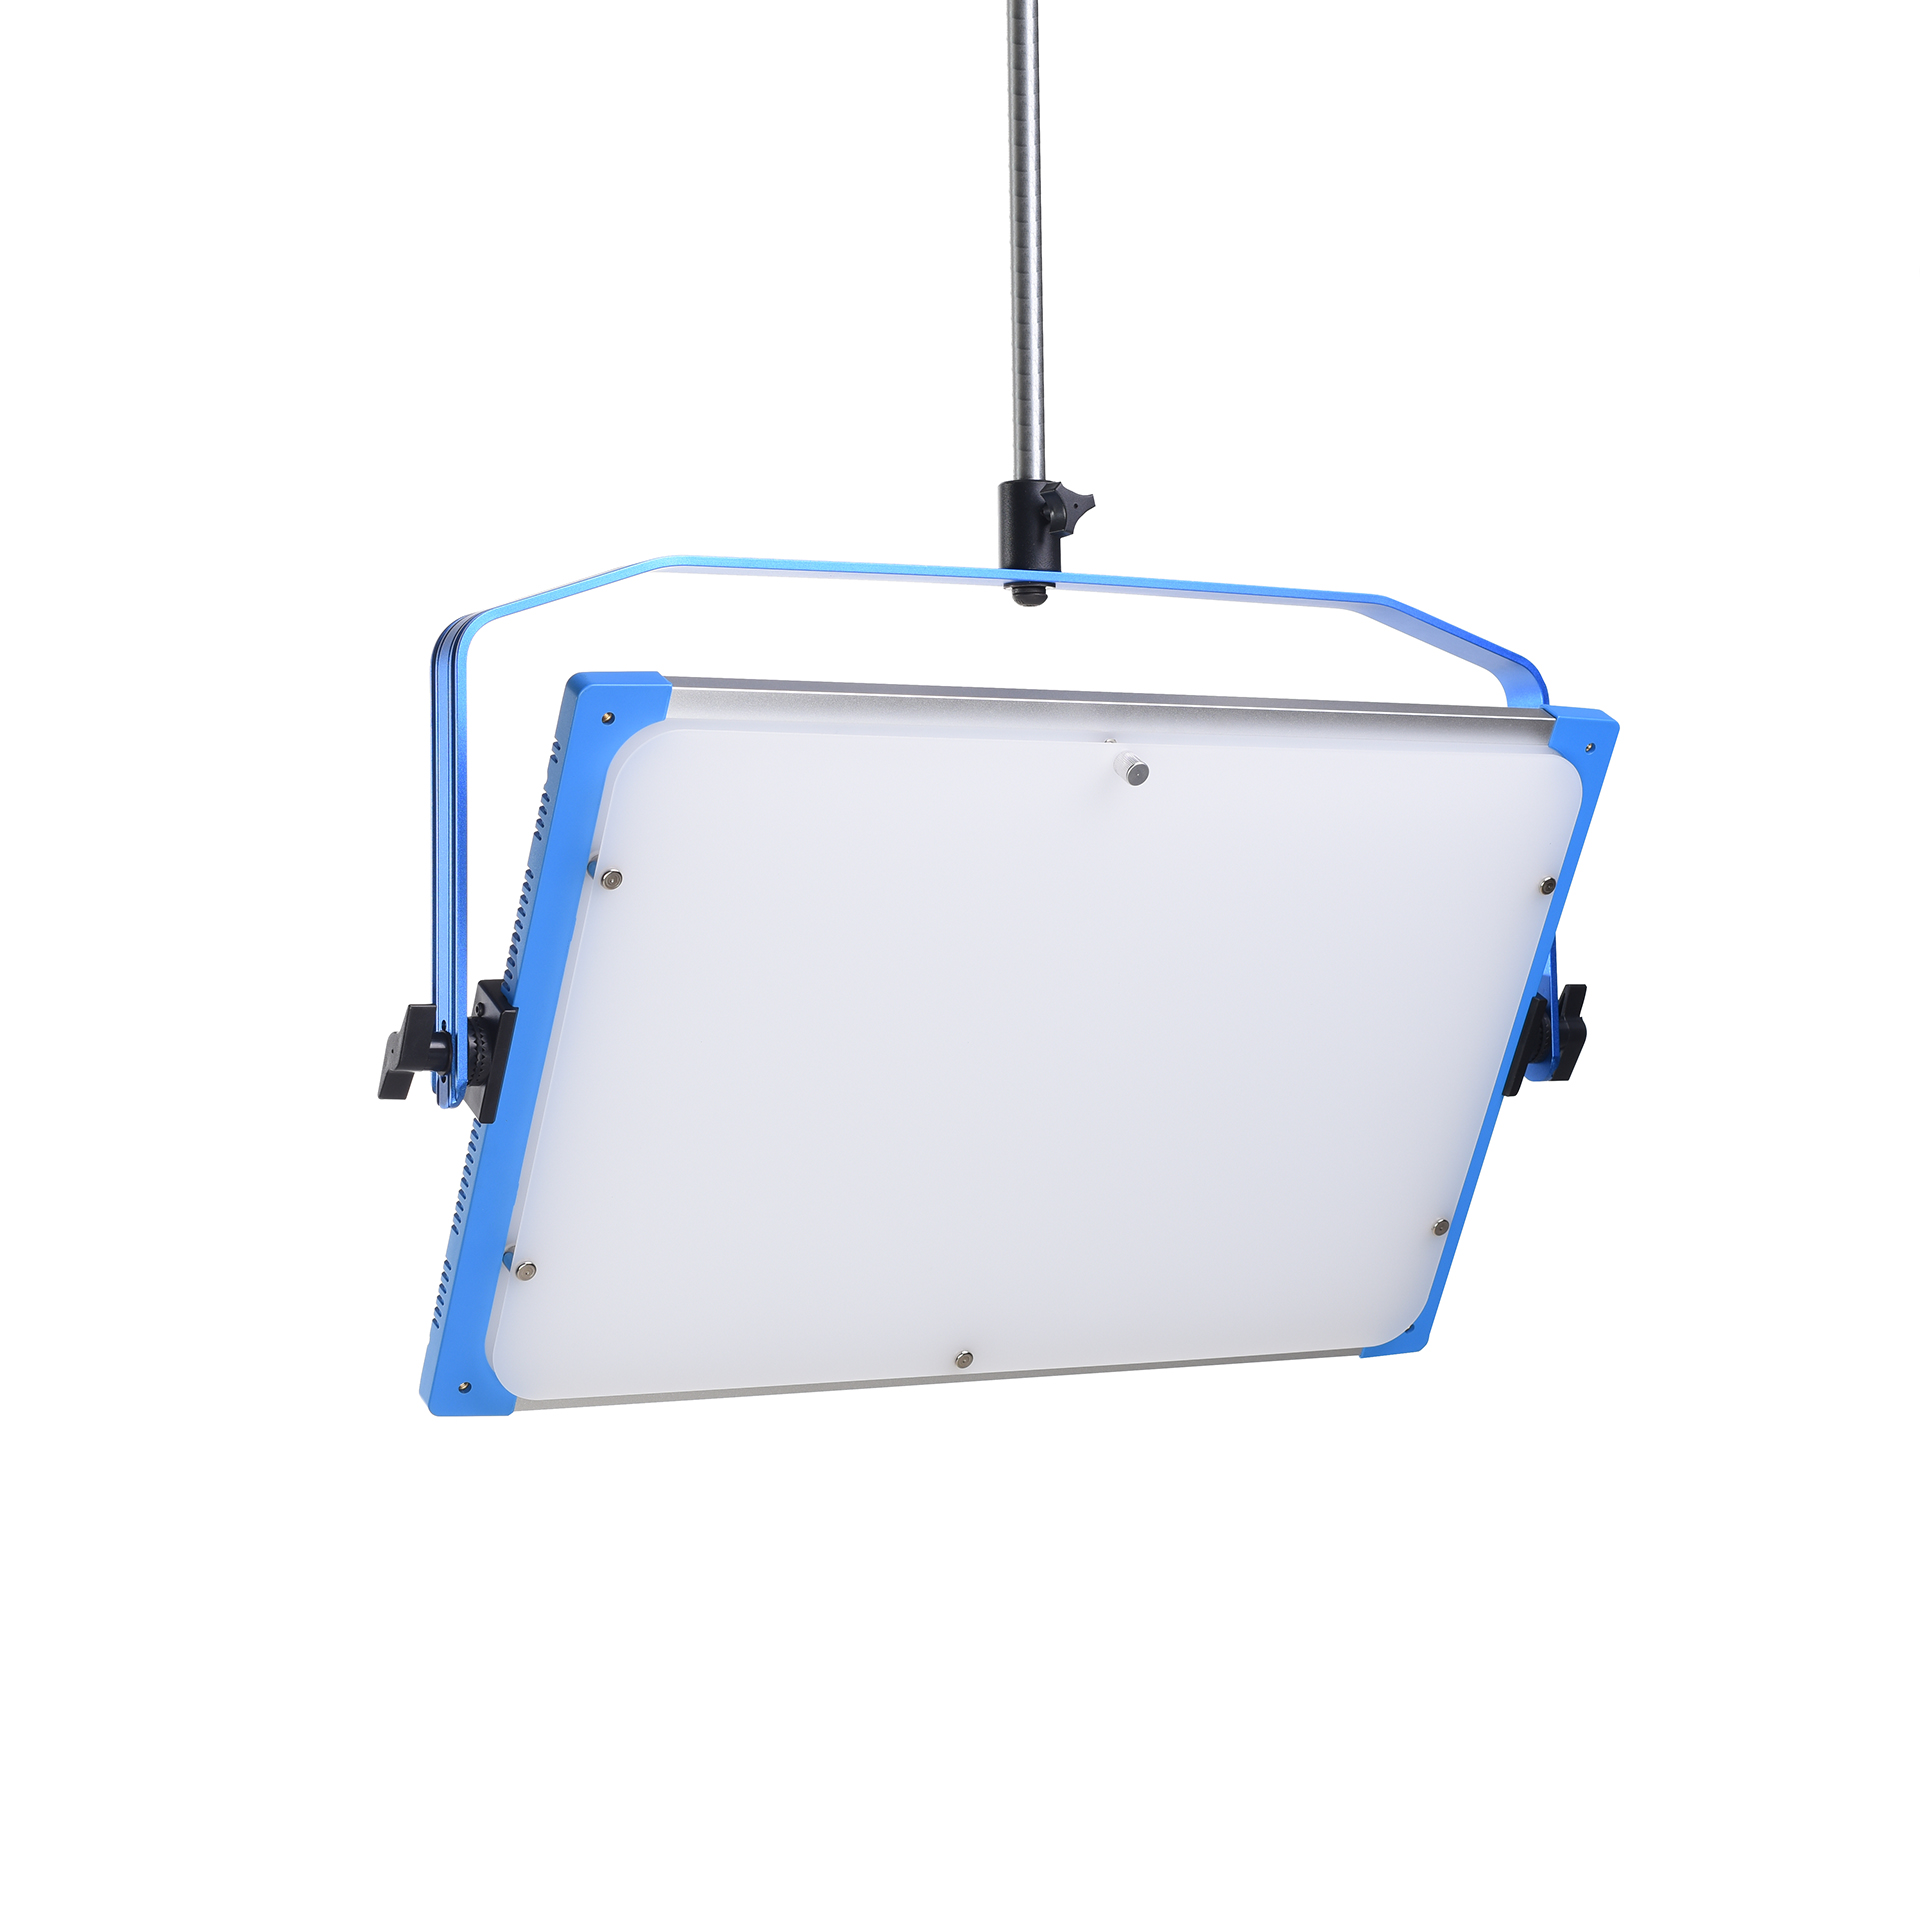 SL-2000A NiceFoto 200W  LED Video Light   Bi-color 3200-6500K CRI 95 LED Panel for YouTube LED Studio Photography, Video